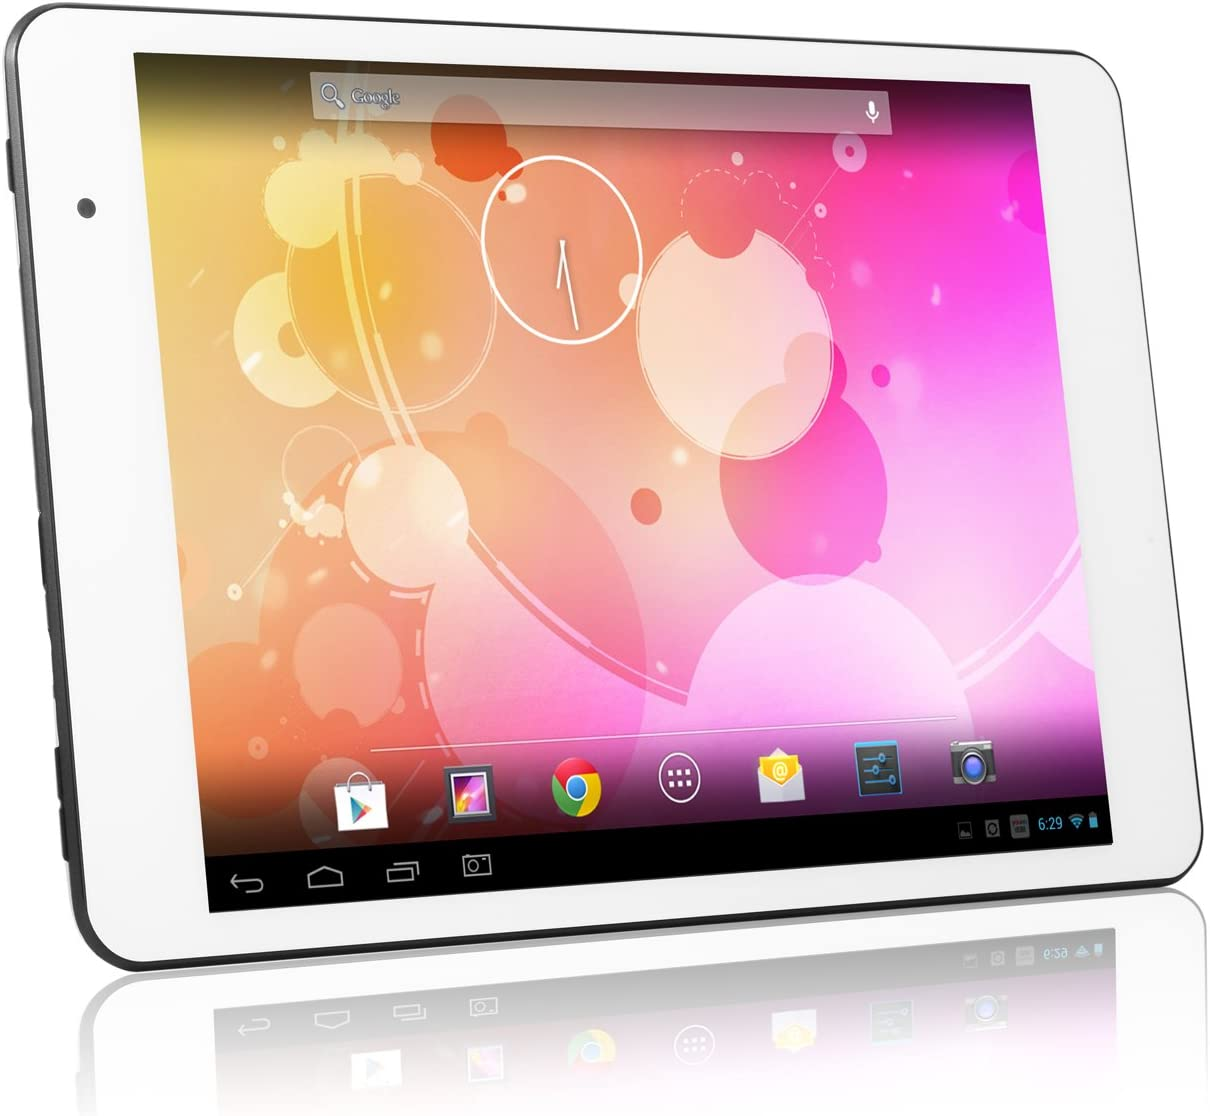 Amazon Com Le Pan 8gb 8 Inch Quad Core Android 4 2 Tablet Silver Tablet Computers Computers Accessories